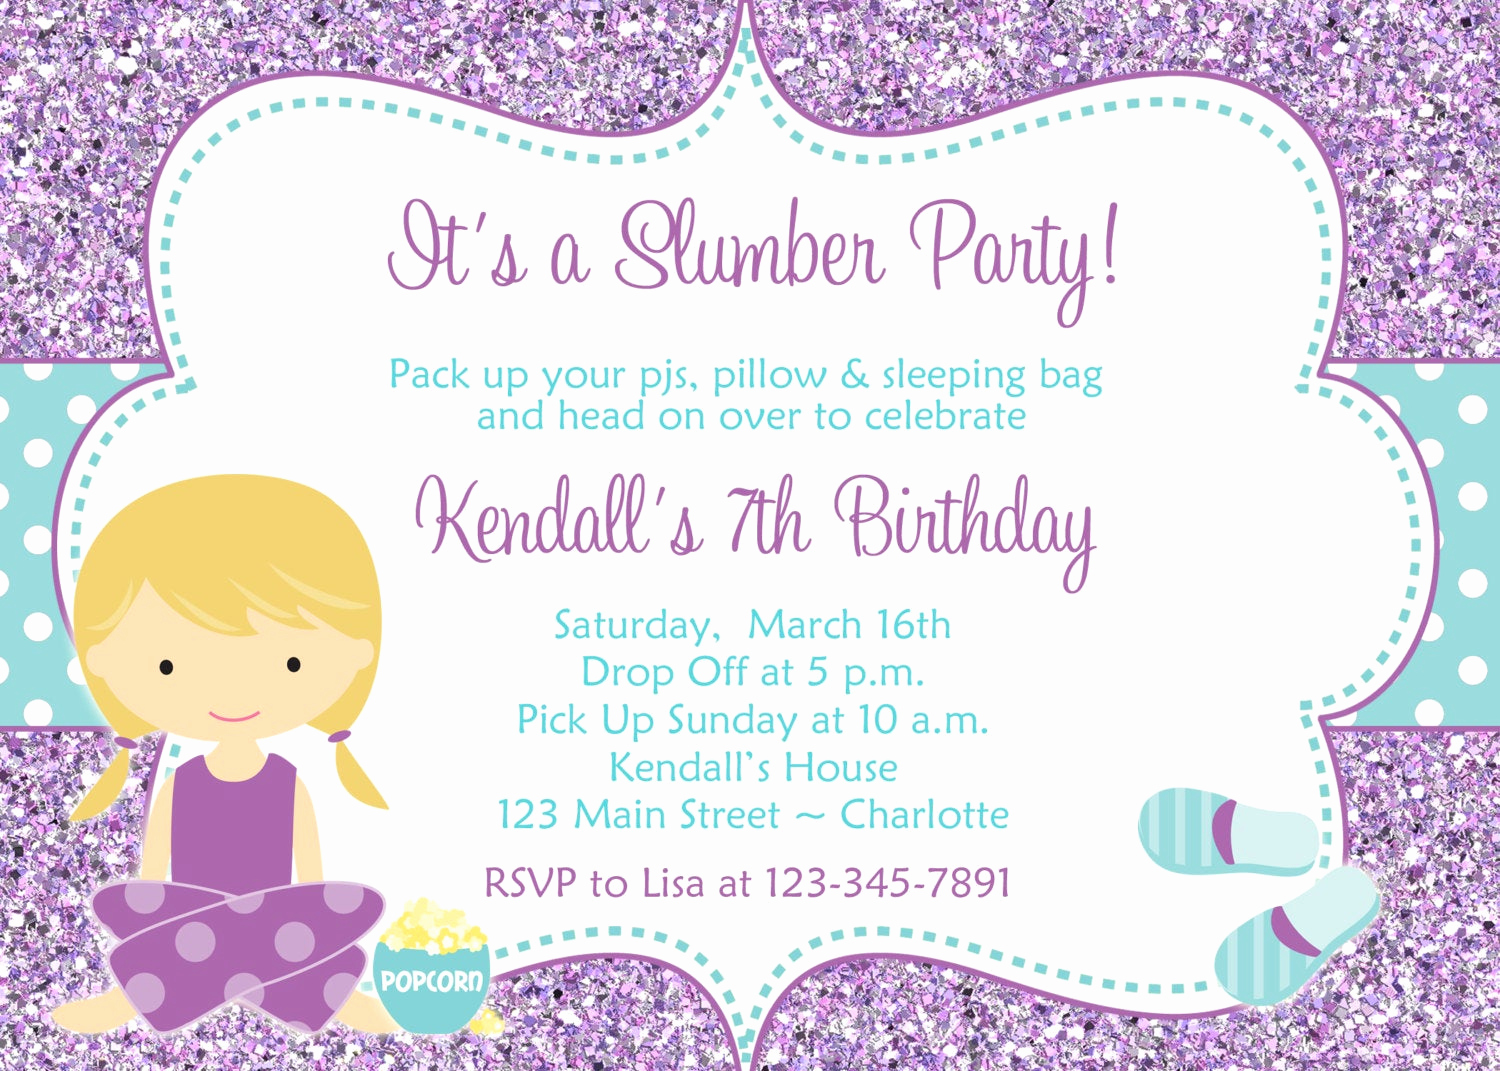 Pajama Party Invitation Wording Inspirational Slumber Party Birthday Invitation Pajama by thebutterflypress